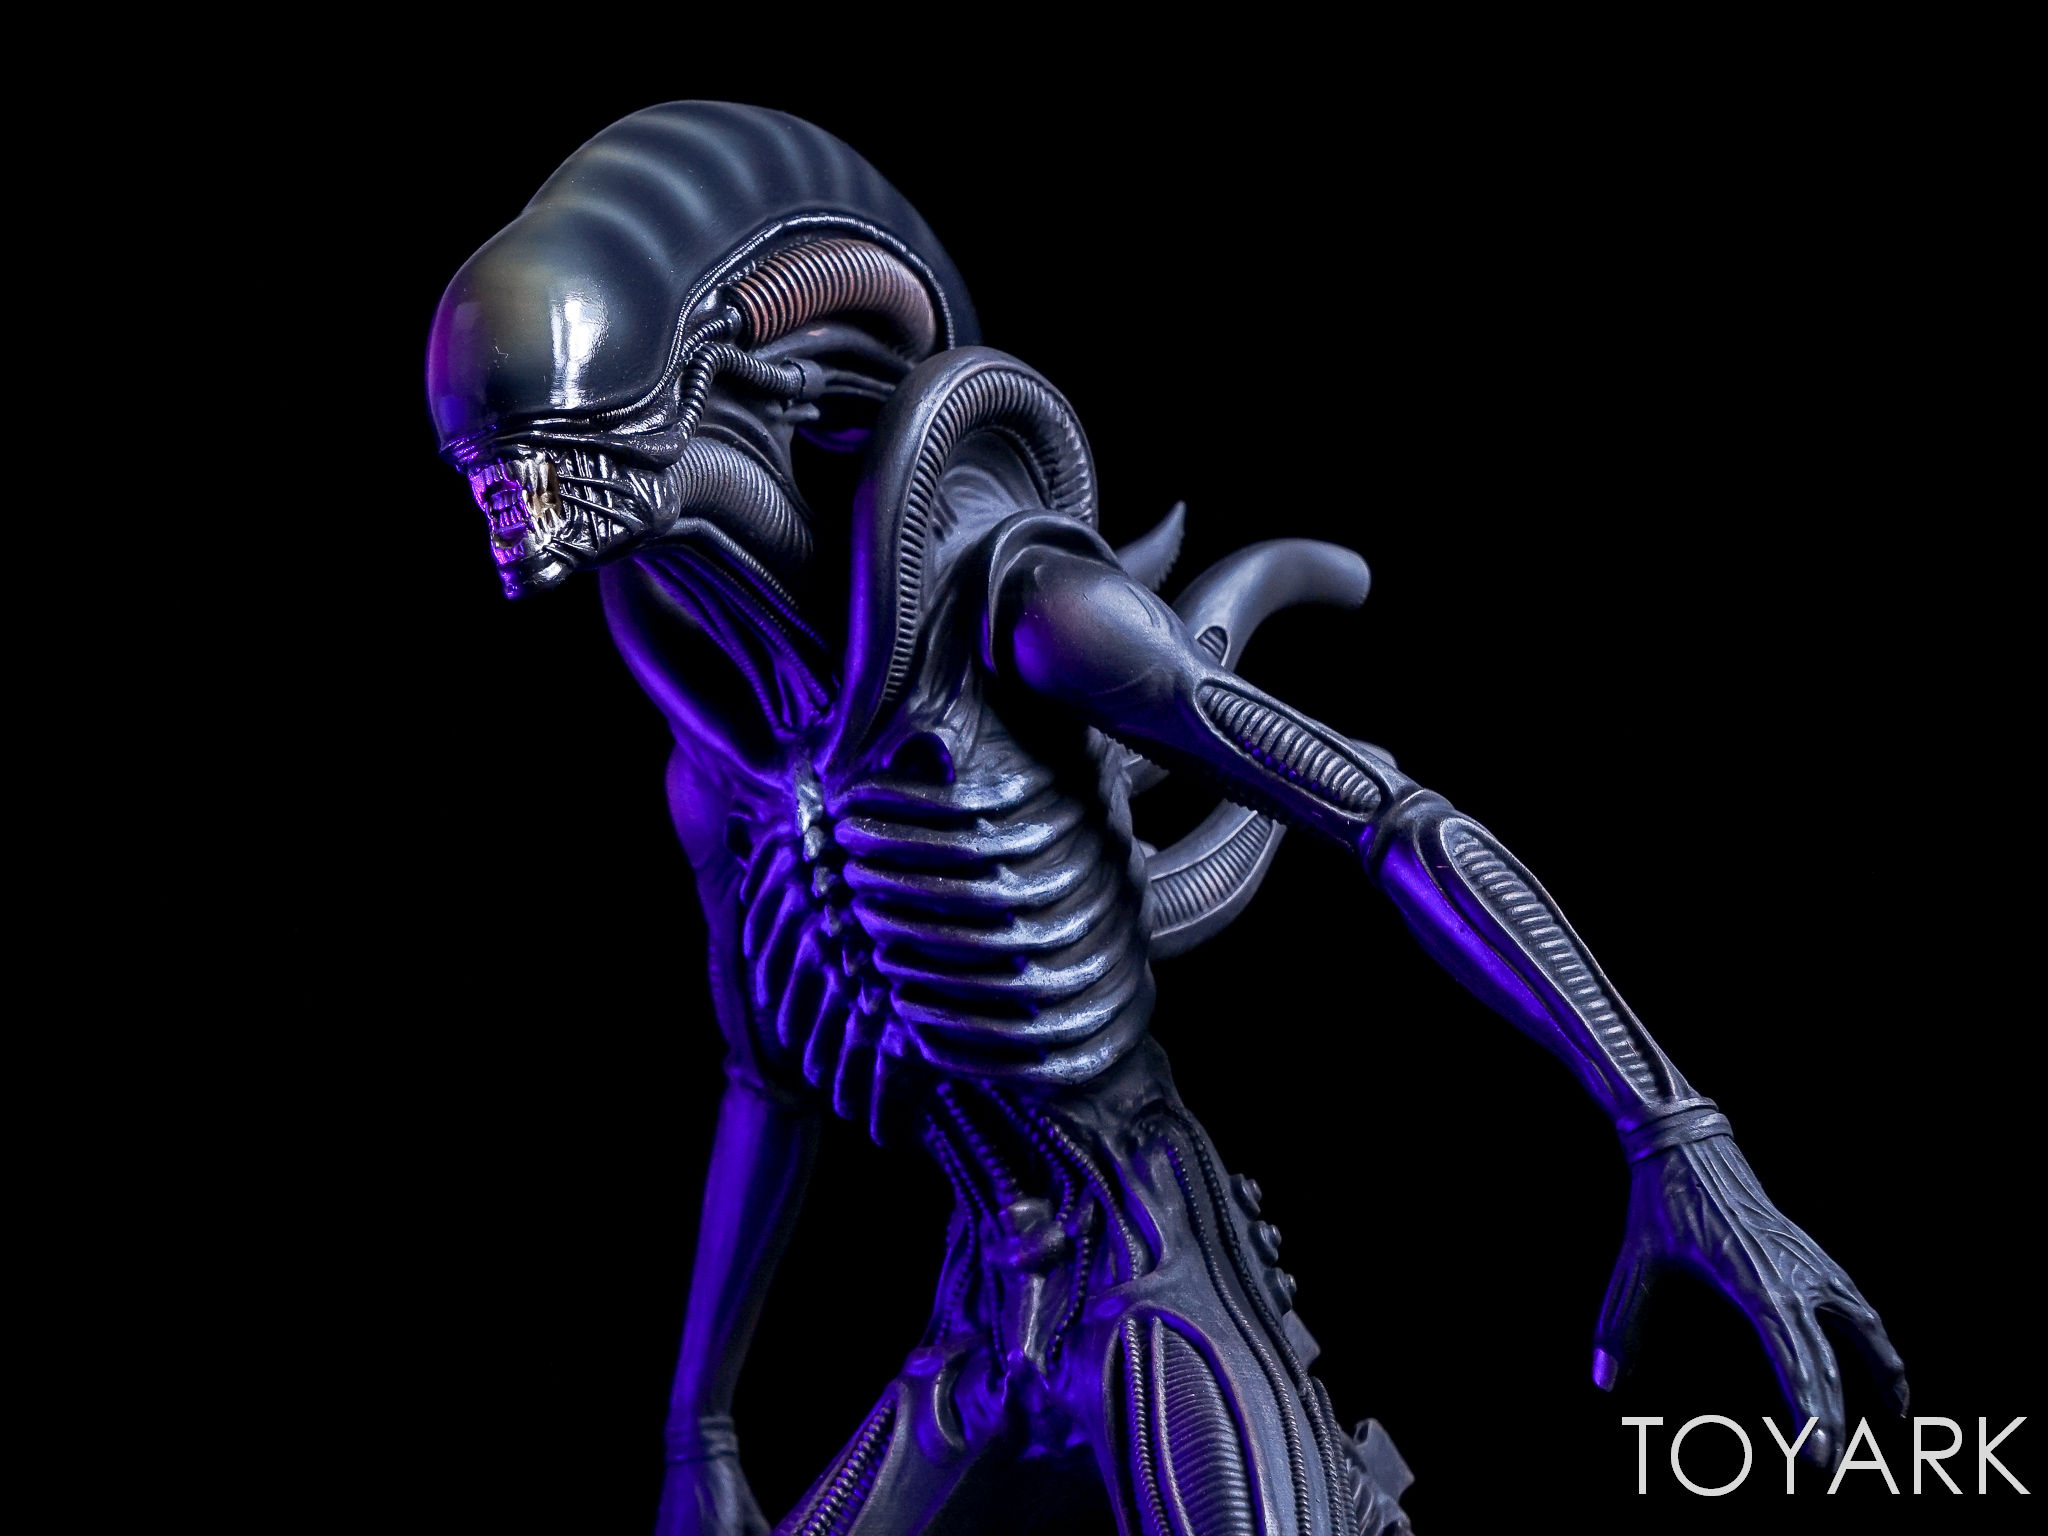 http://news.toyark.com/wp-content/uploads/sites/4/2017/05/Hero-Collector-Mega-Alien-Statue-032.jpg